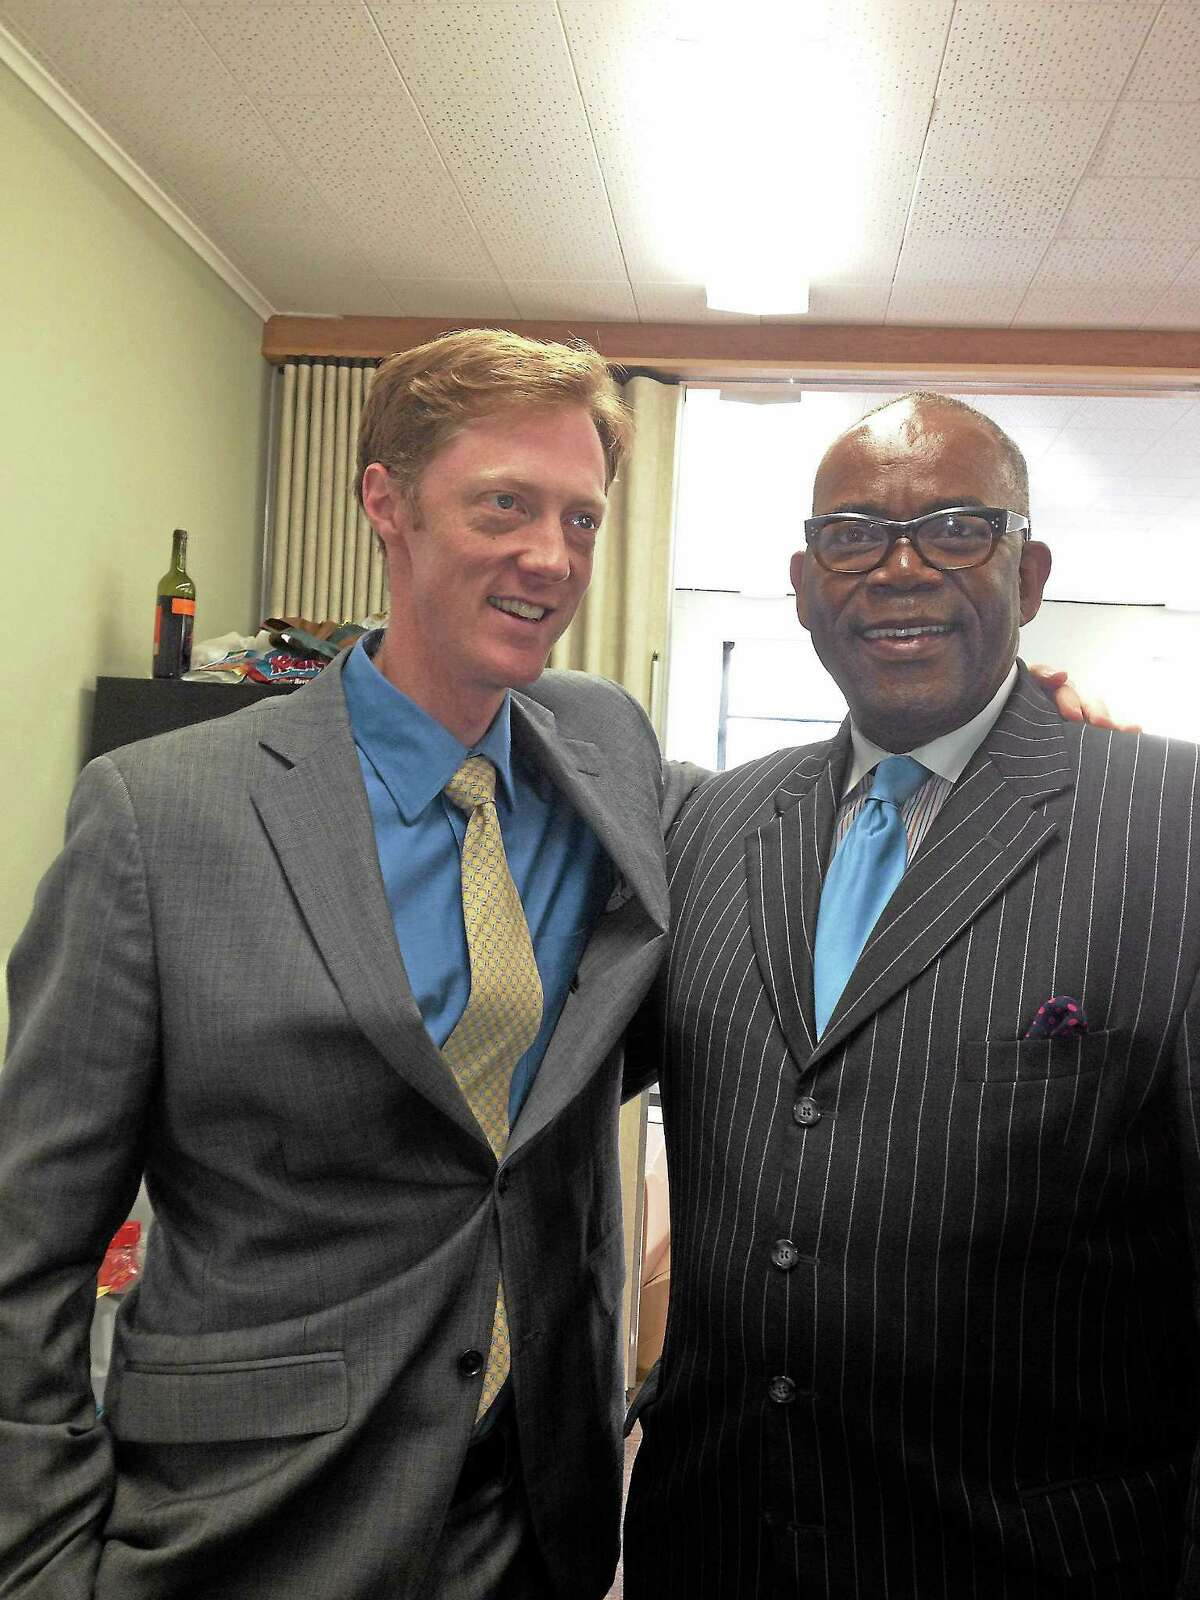 City Clerk Ron Smith, right, poses with New Haven mayoral candidate Justin Elicker.